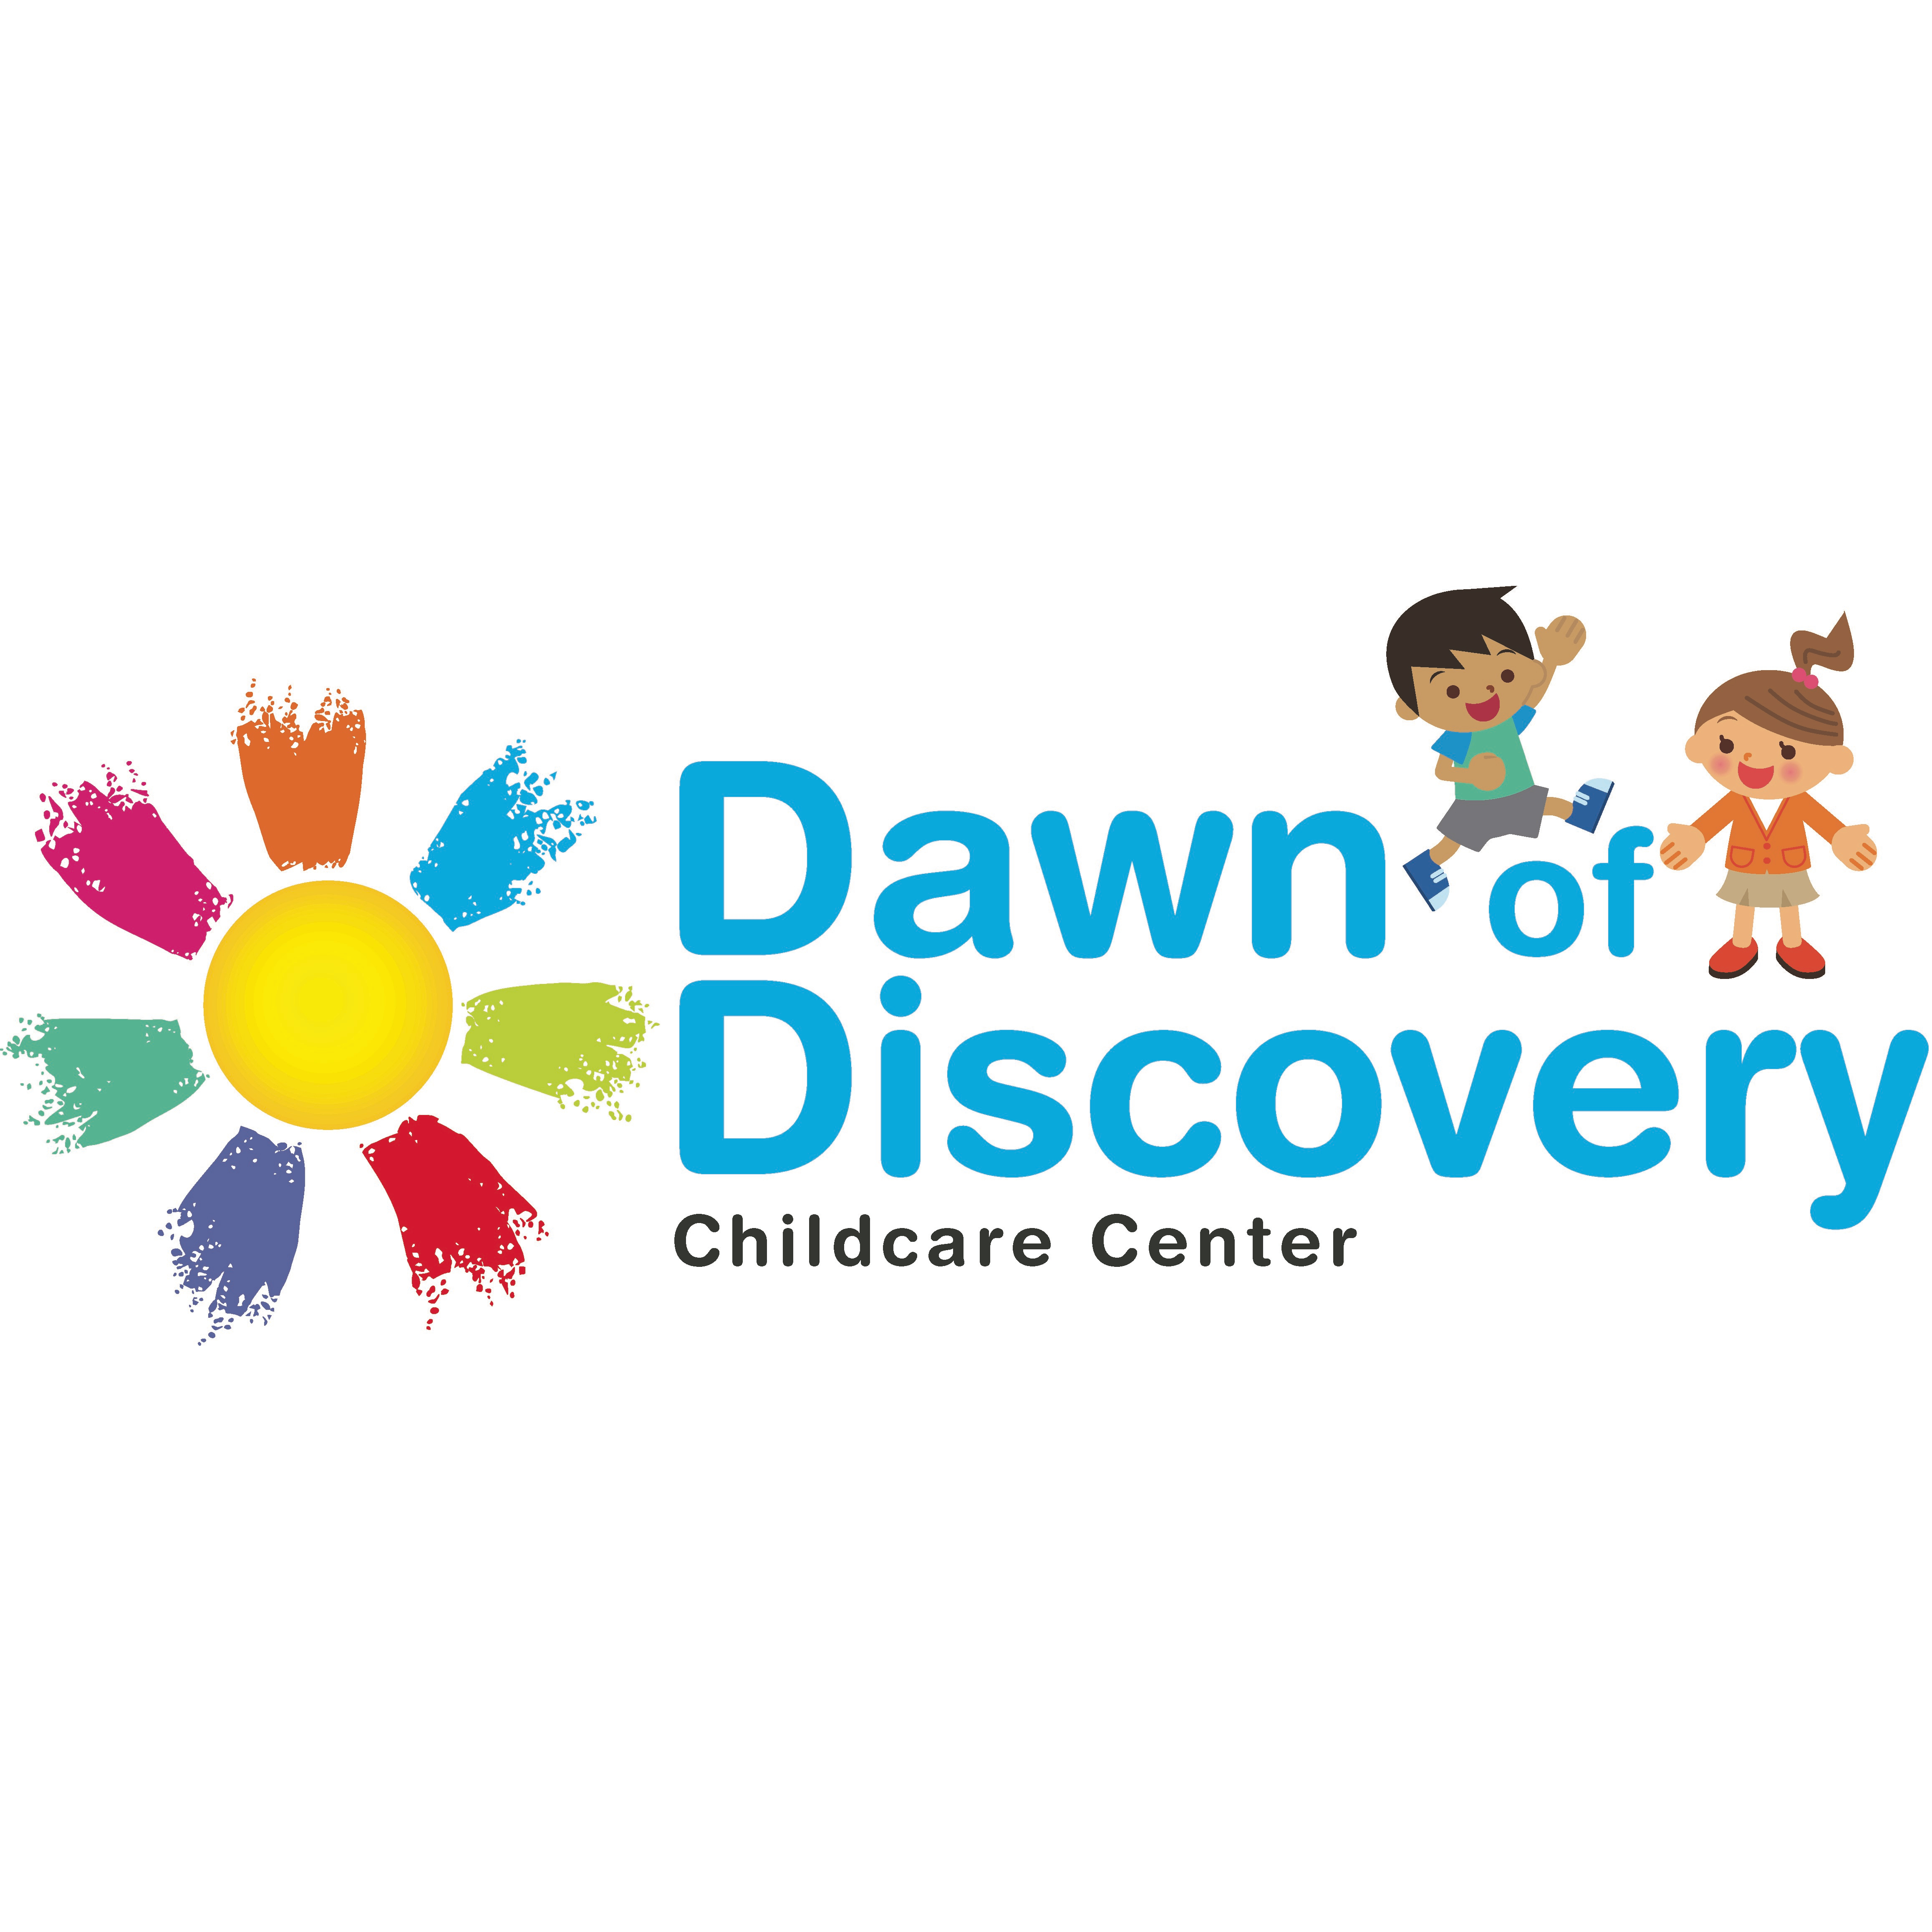 Dawn of Discovery Childcare Center